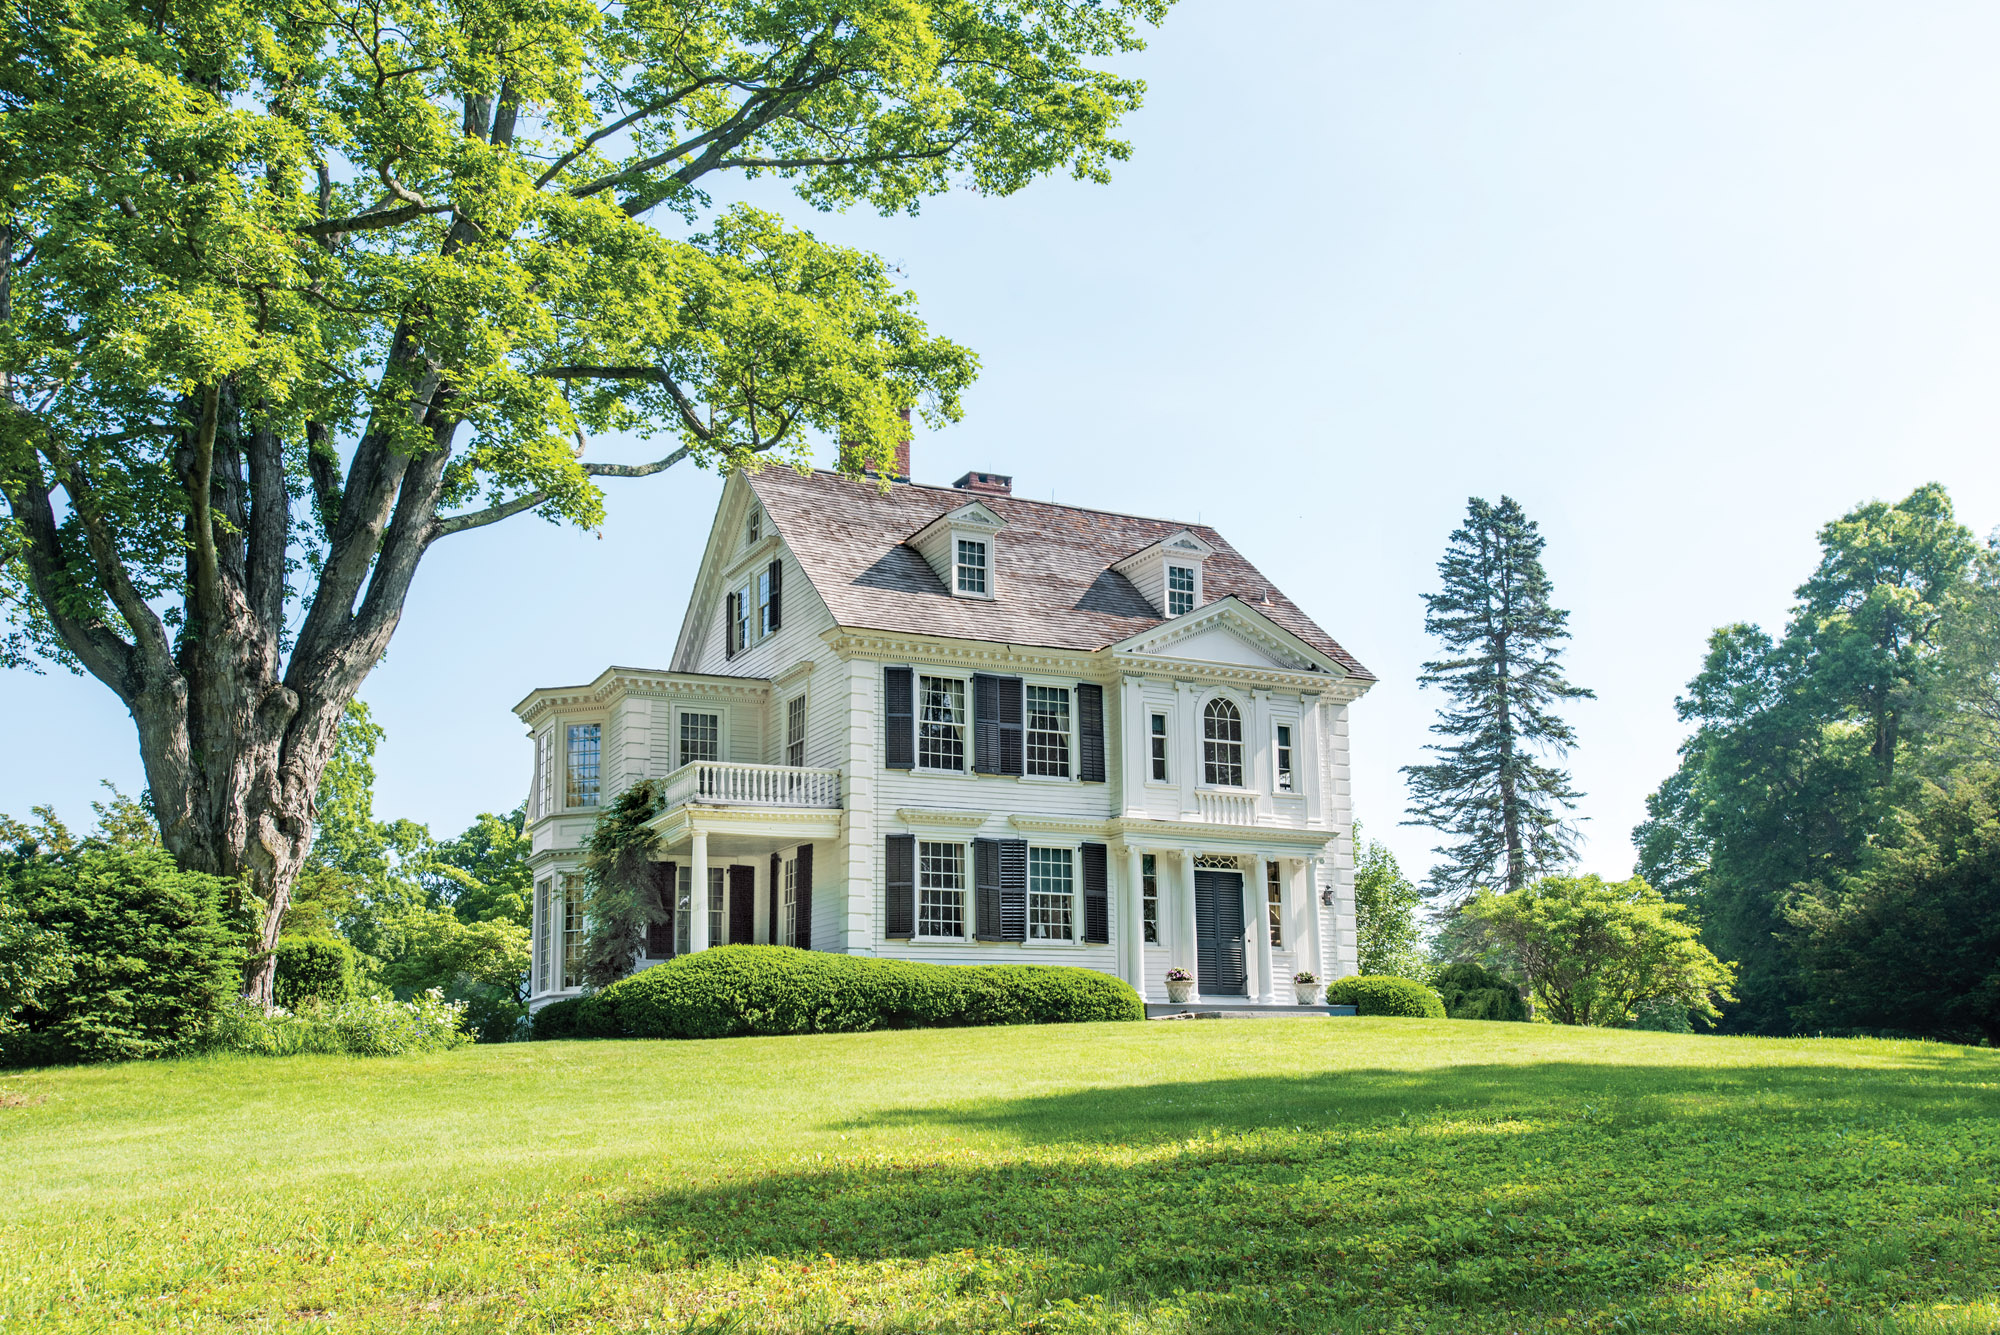 The Restoration of The Bellamy-Ferriday House